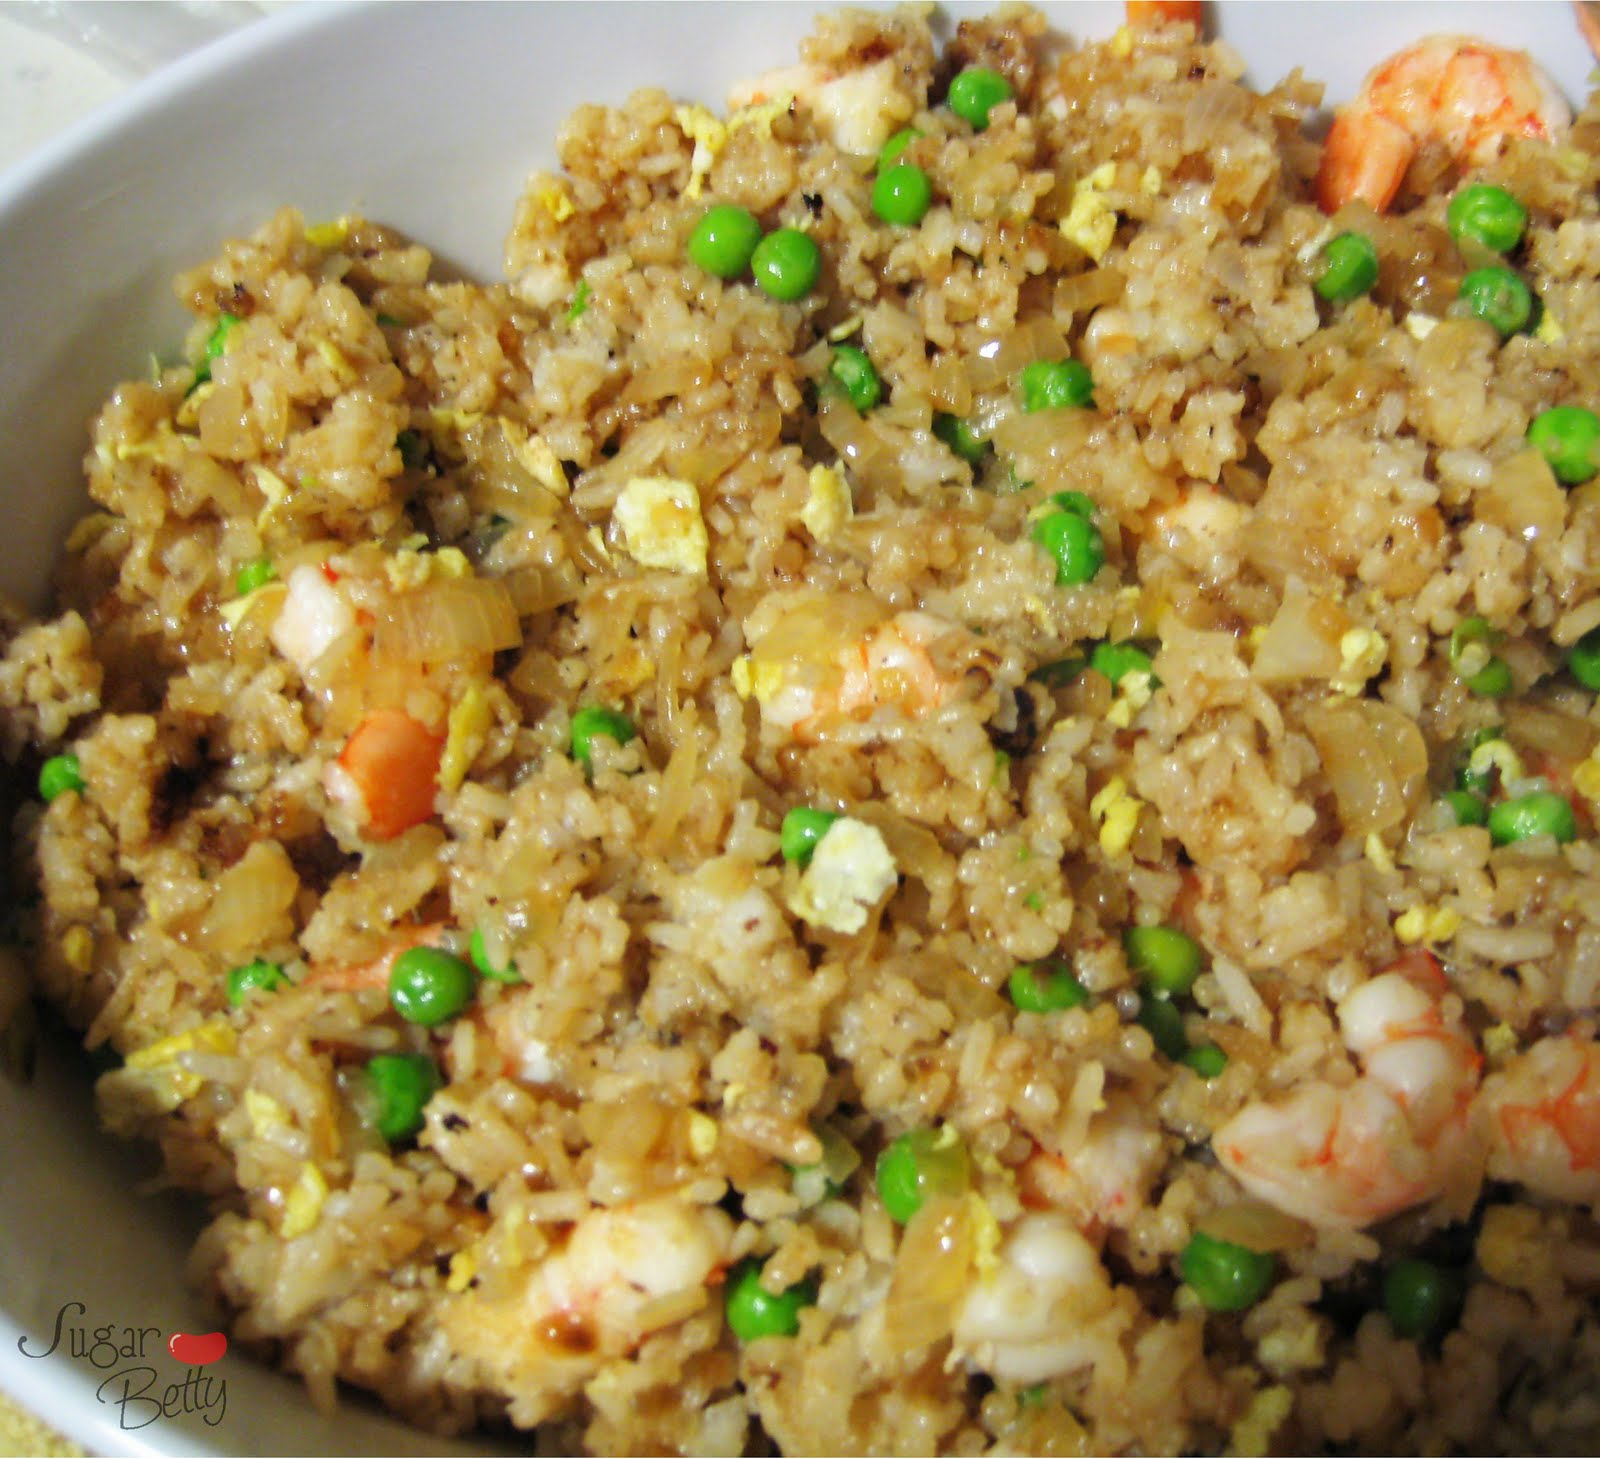 Sugar.Betty: Shrimp Fried Rice